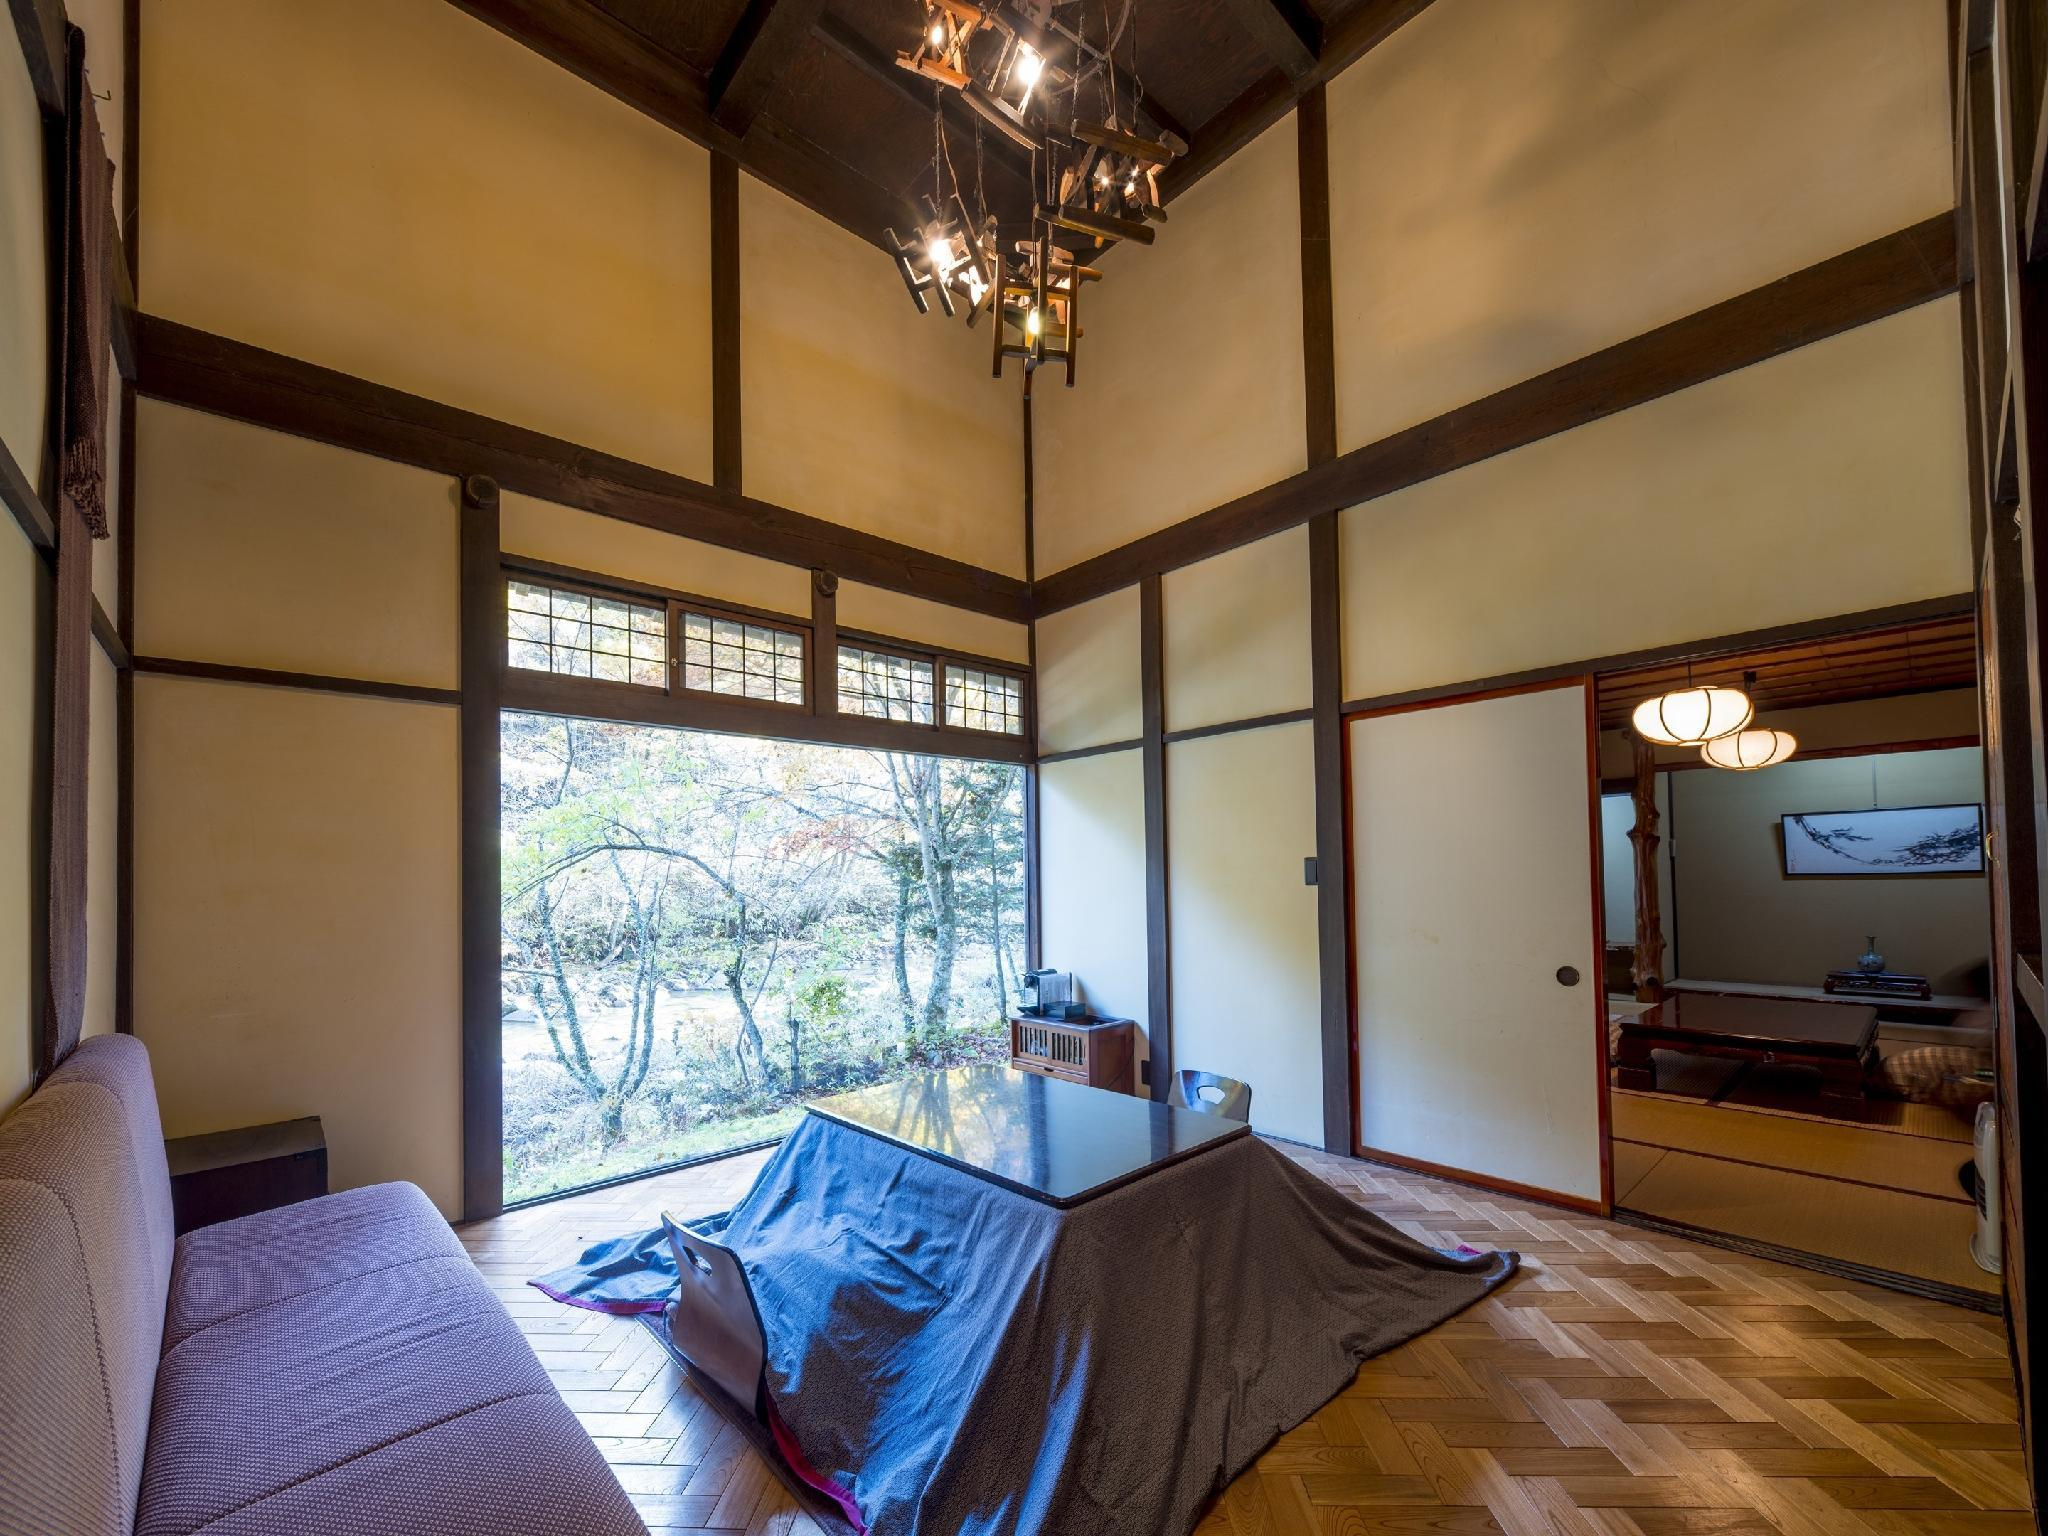 苅安・位山(離れ/茅葺き合掌造り/80平米)|80平米 (Detached Japanese-style Room (Kariyasu Type/Kuraiyama Type))